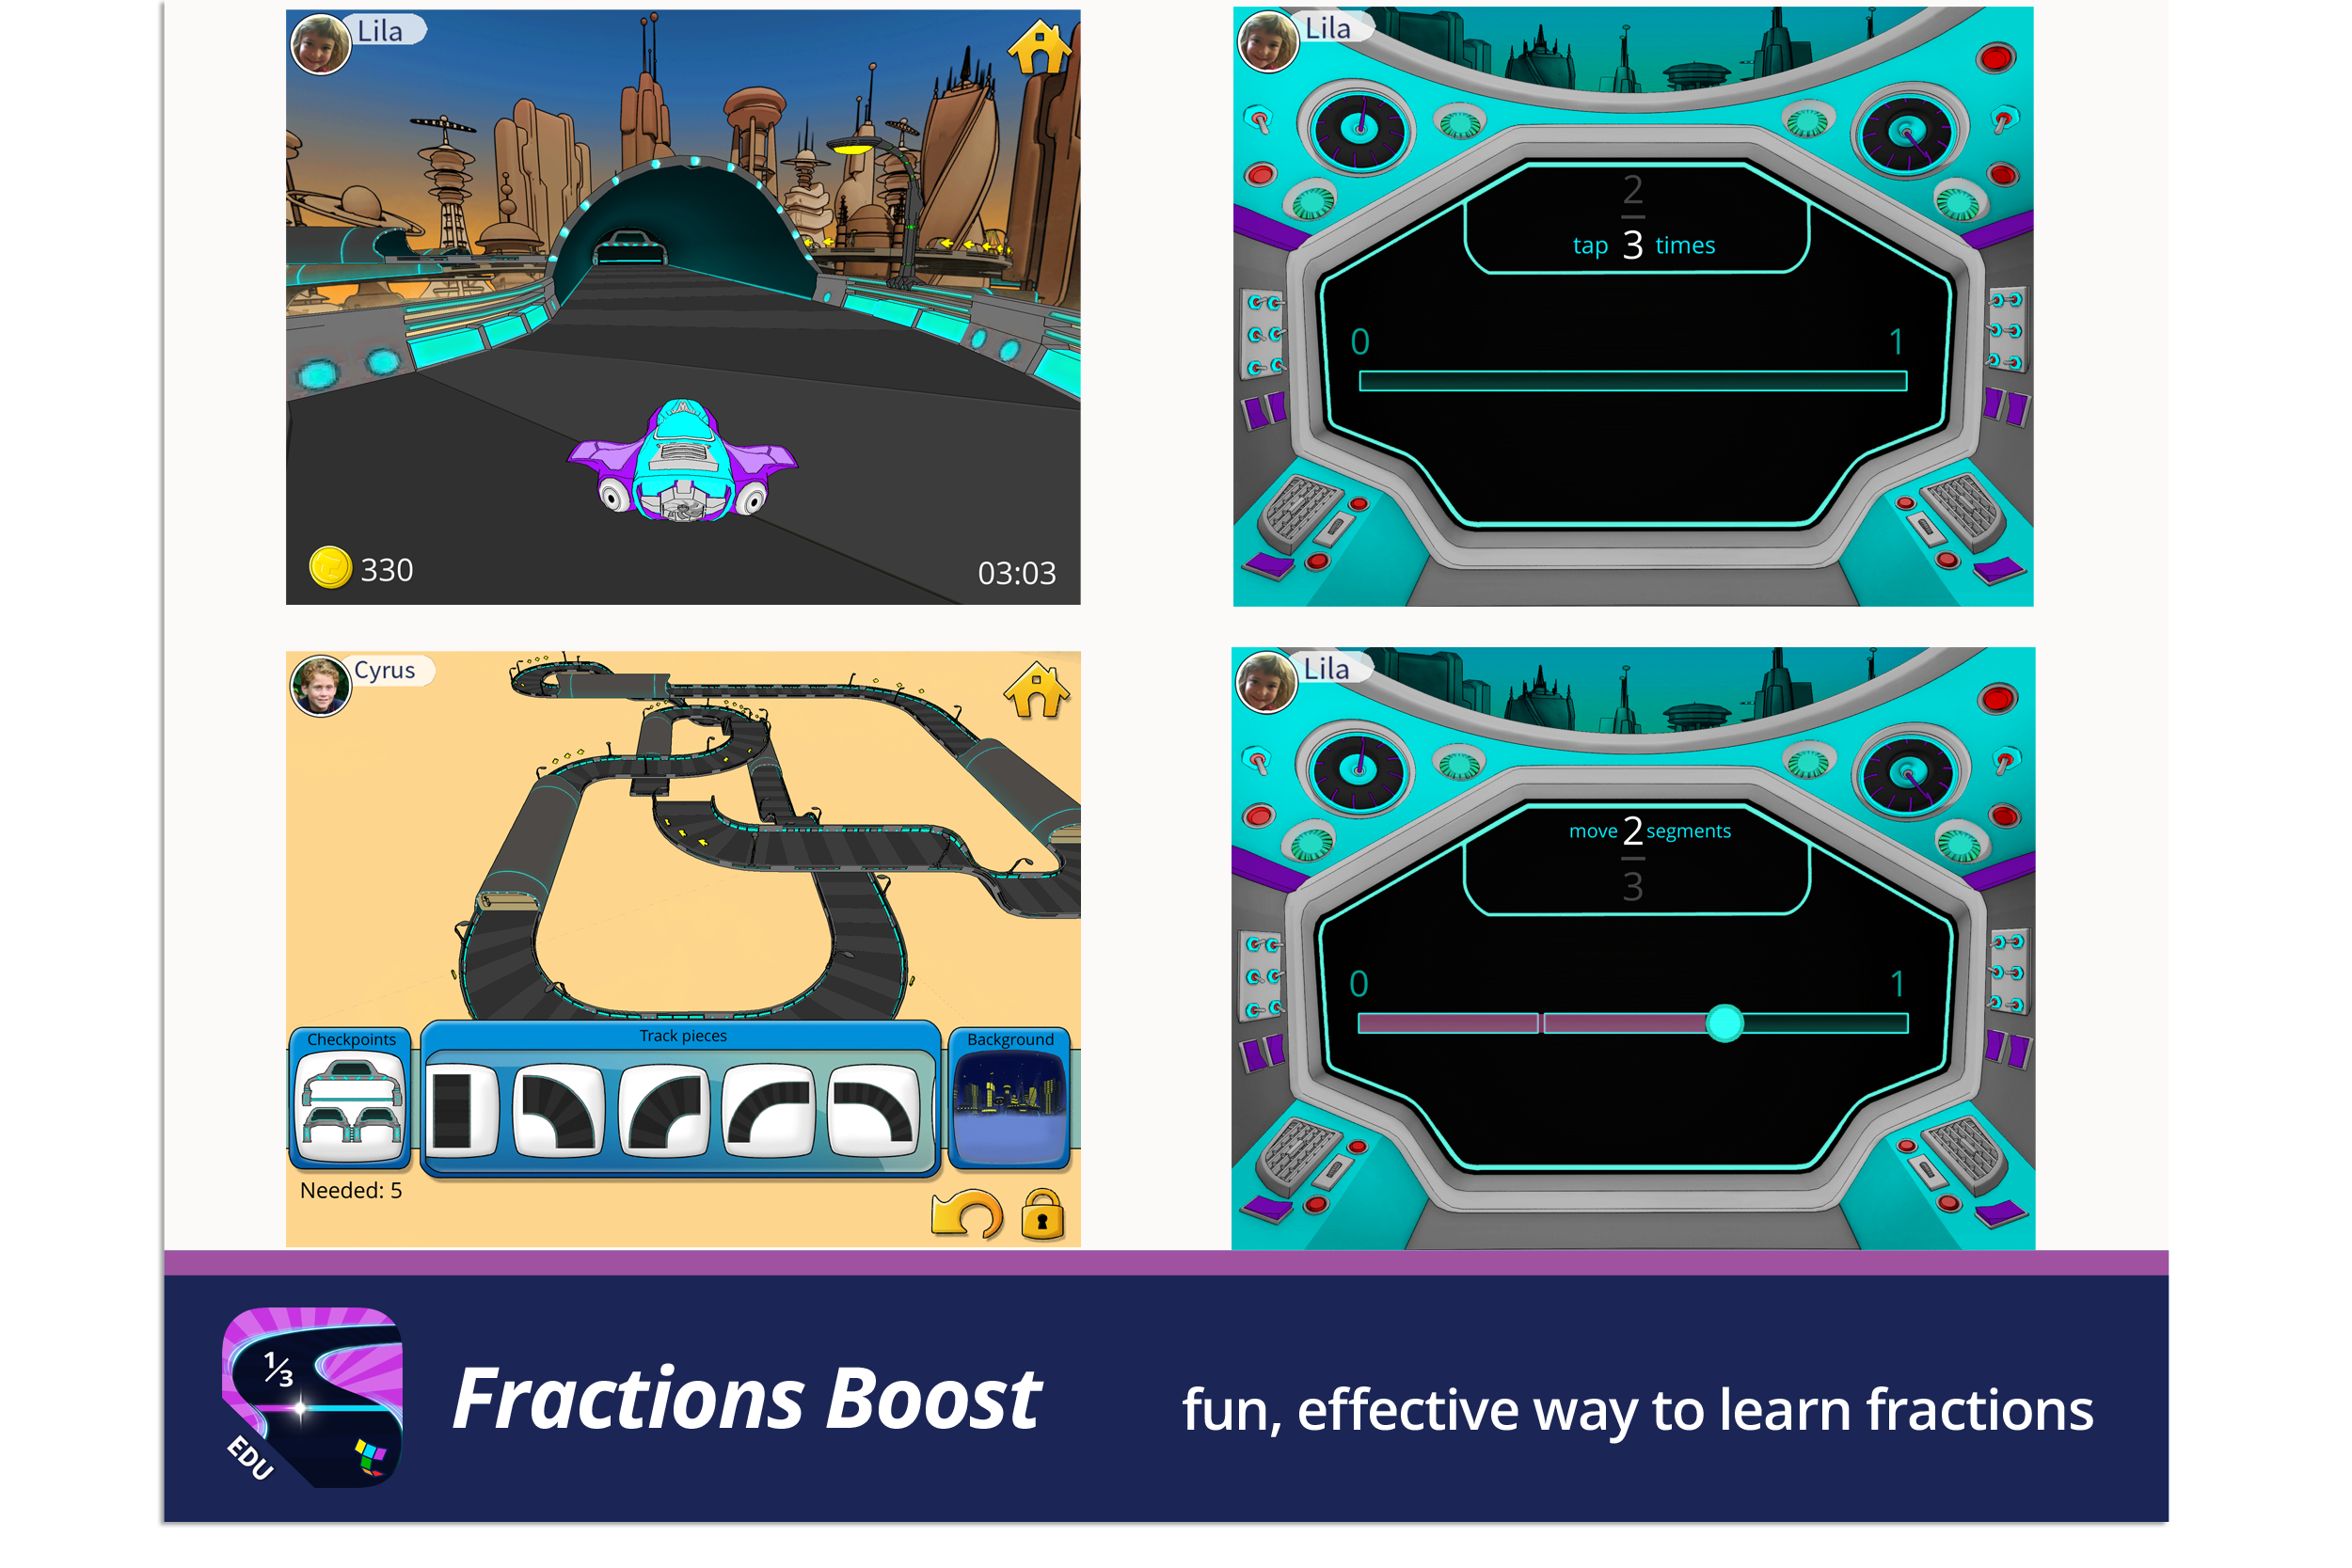 Fractions Boost, a fun, effective way to learn fractions